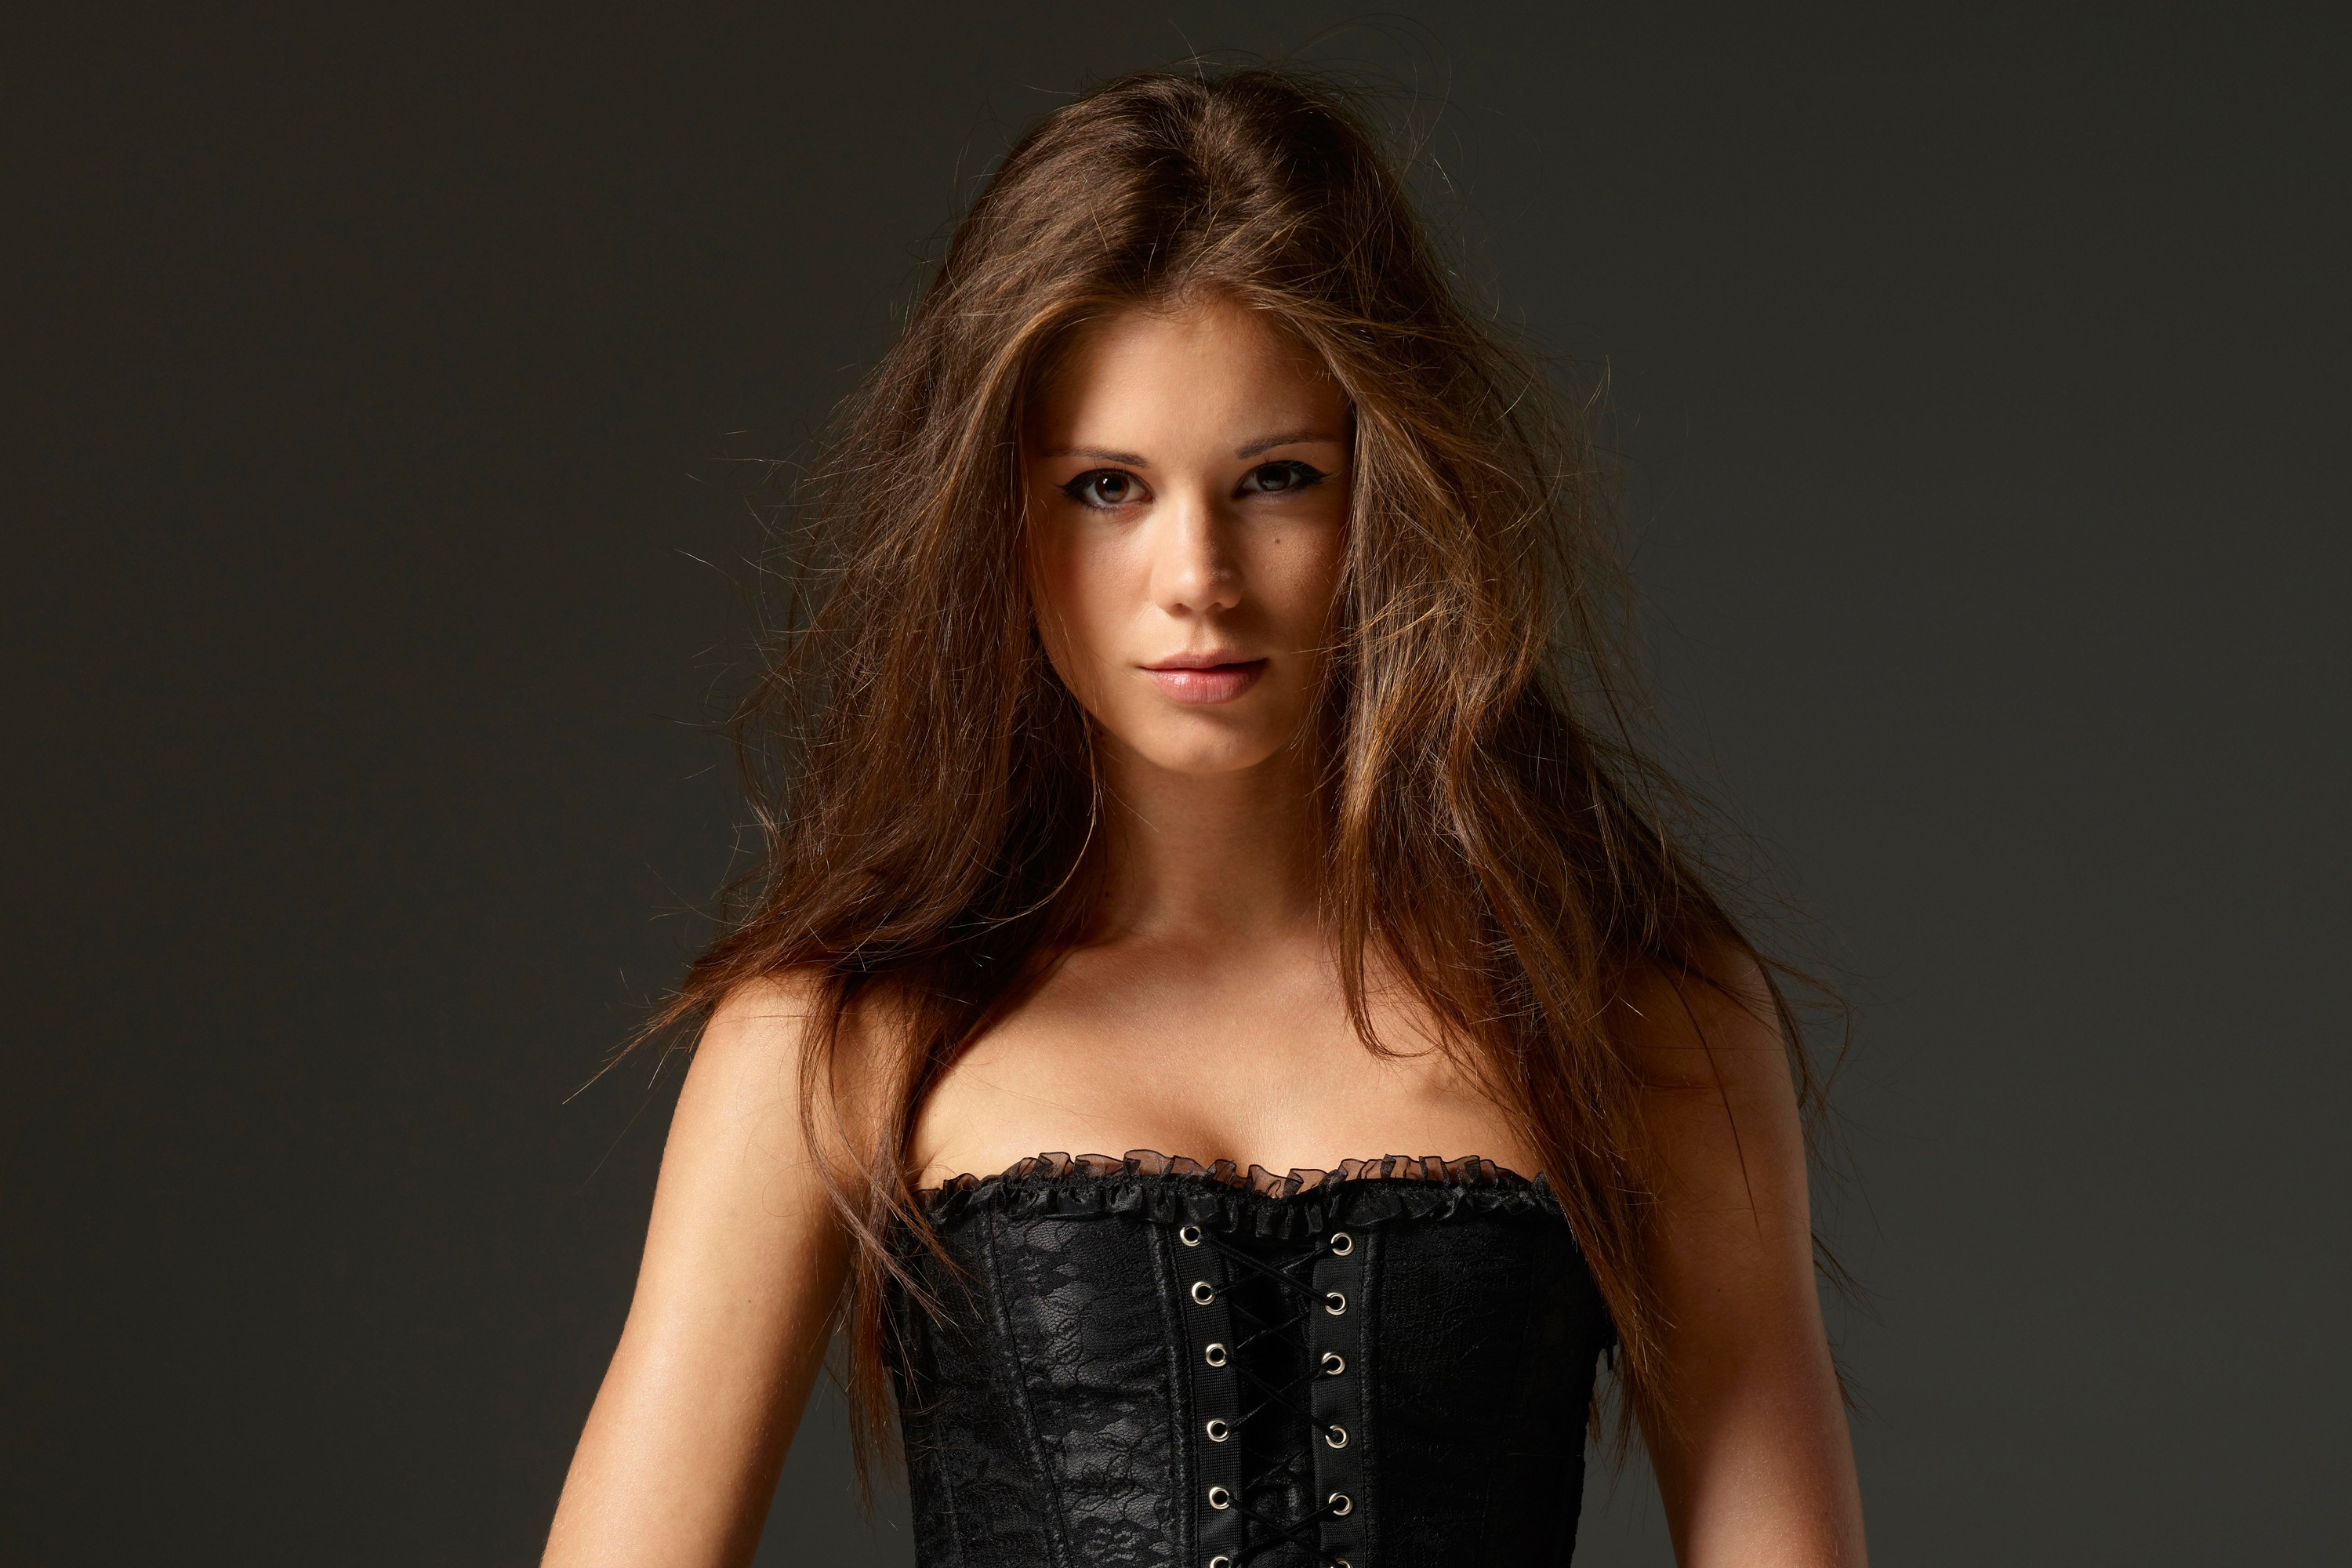 brunettes woman long hair HD Wallpaper